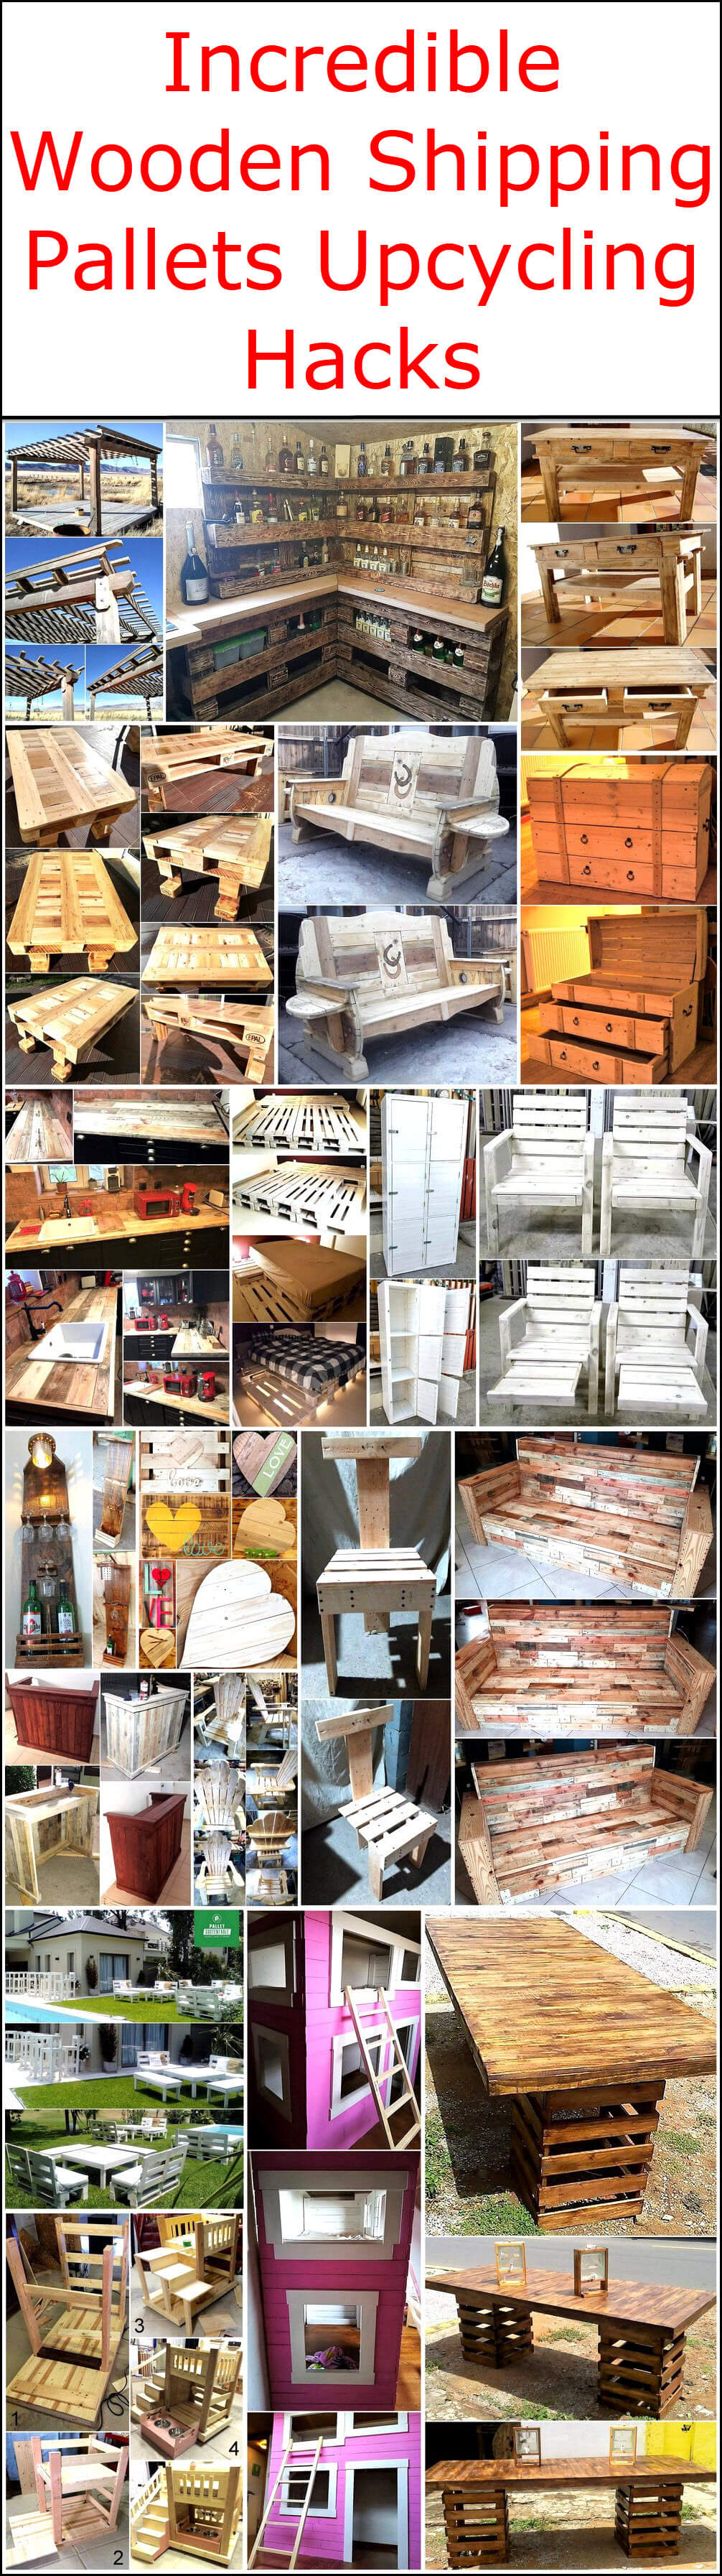 Incredible Wooden Shipping Pallets Upcycling Hacks